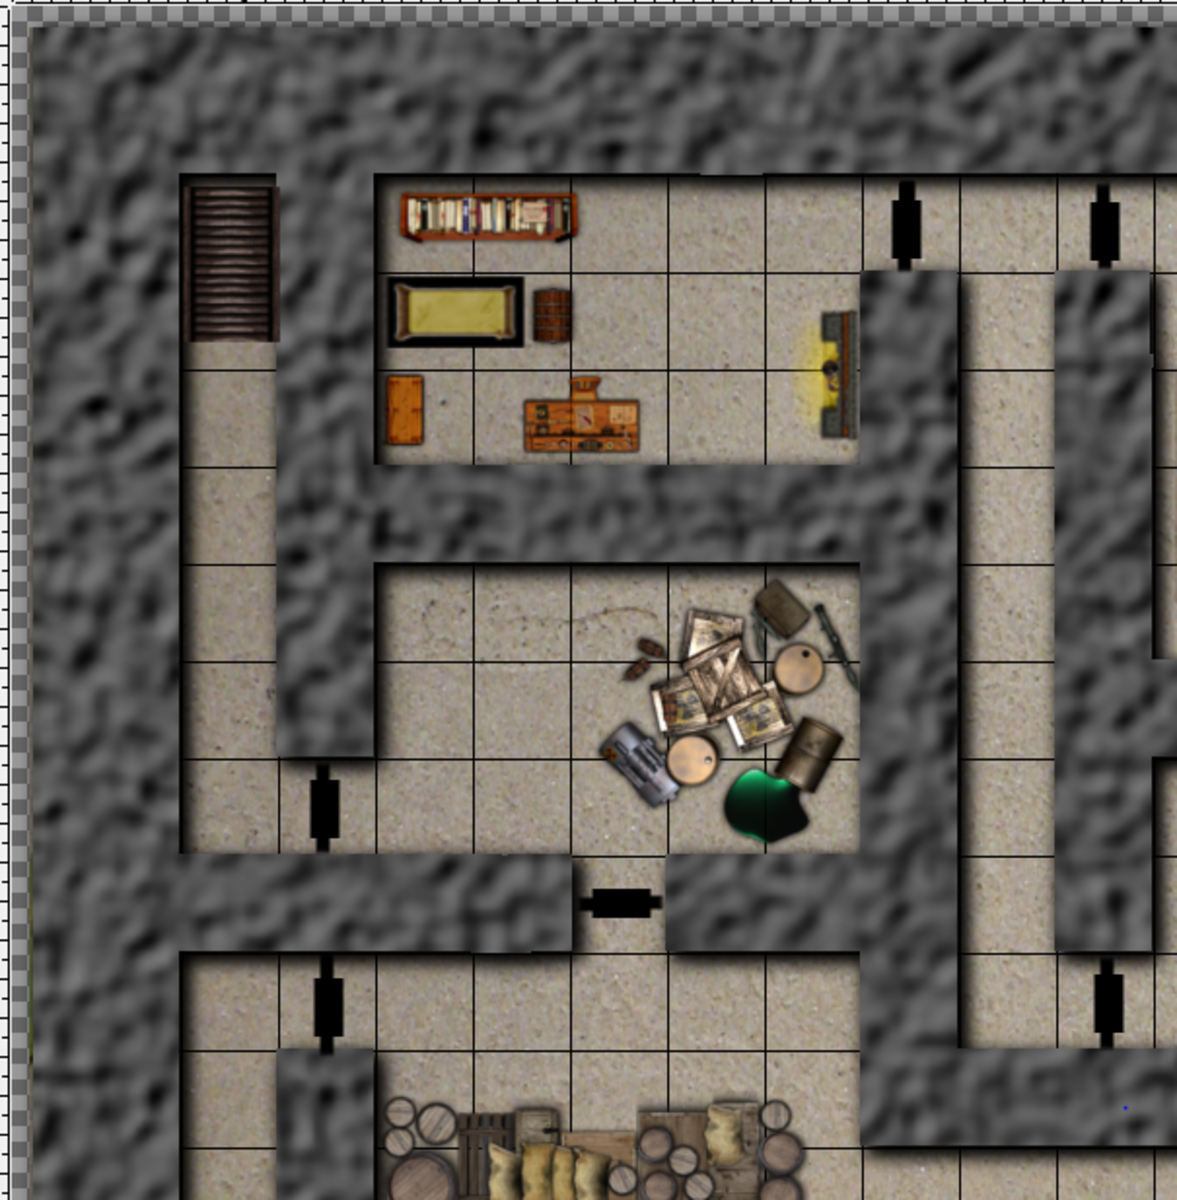 creating-a-fantasy-dungeon-map-with-gimp-28